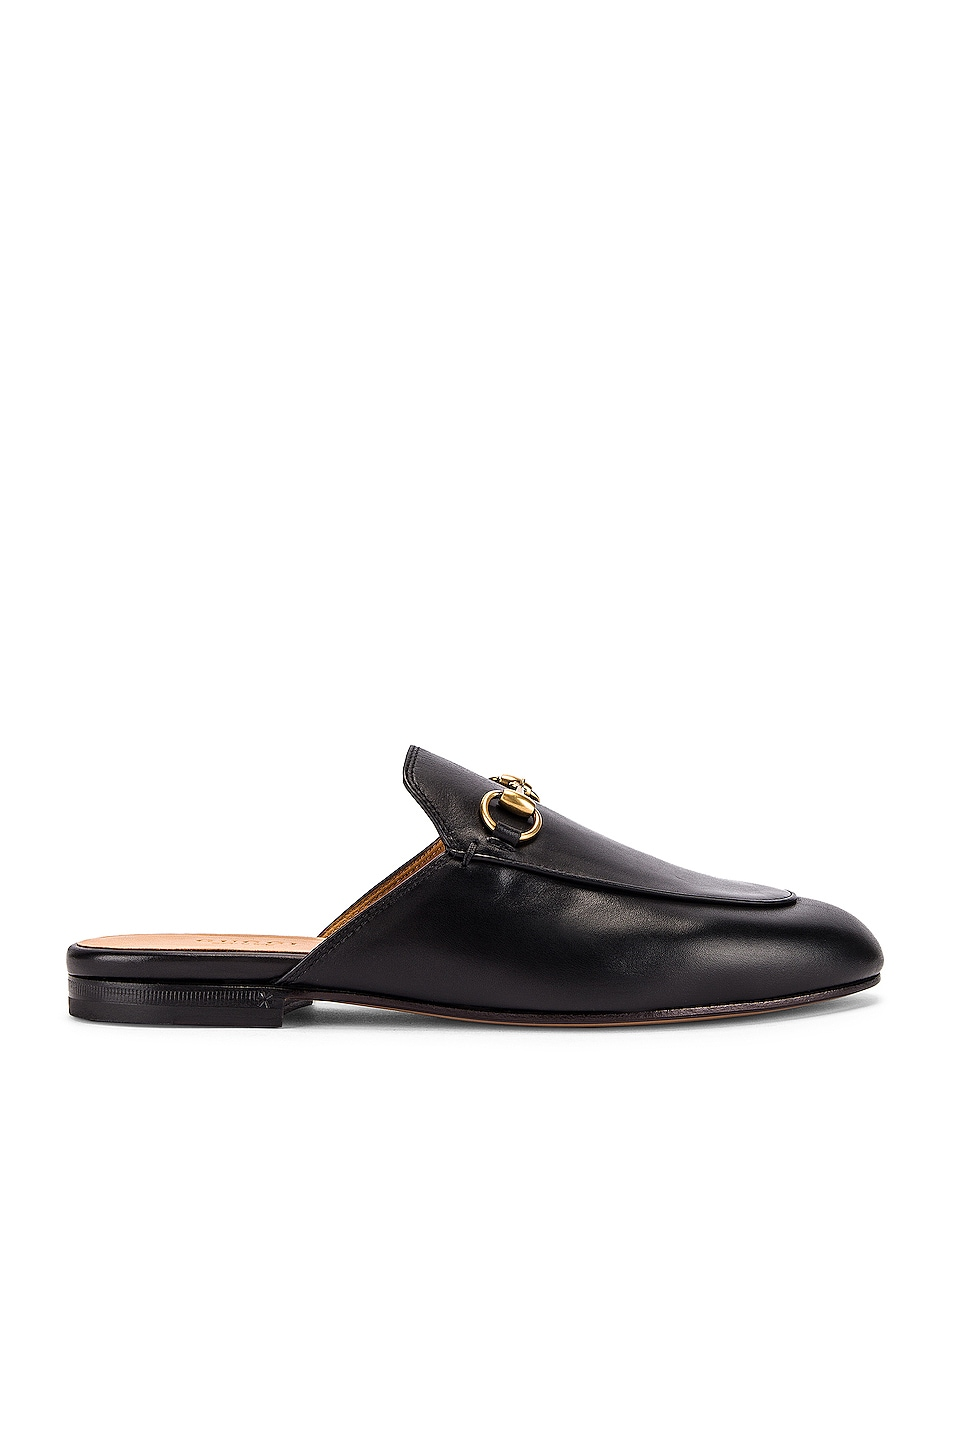 Image 1 of Gucci Princetown Slides in Black